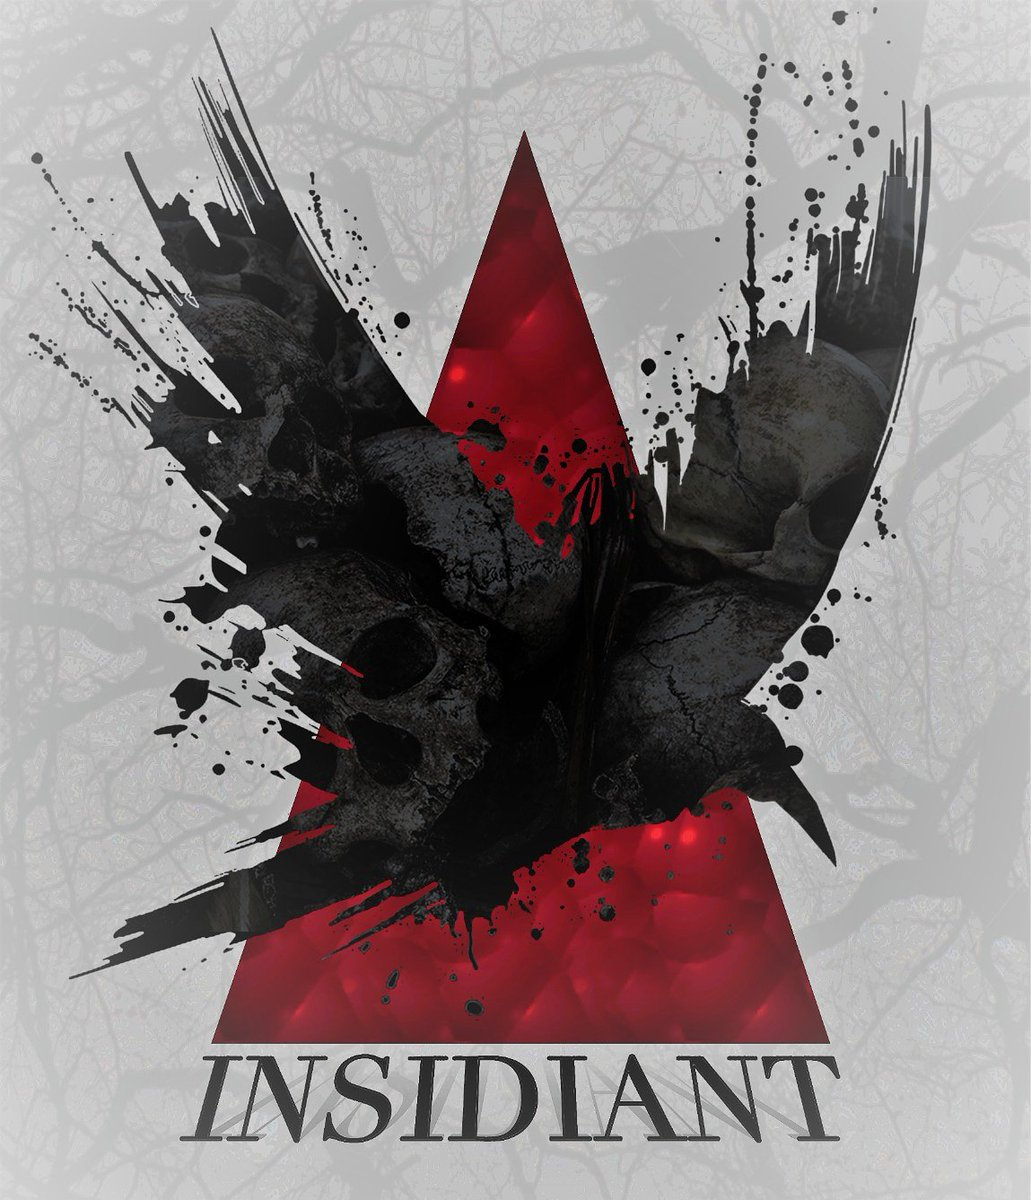 Hey that's us @insidiantband! Check out the latest #podcast where we have some fun talking about... Ourselves! Some fun Craigslist stories too. Link in bio and on Spotify Google stitcher & podbean! #eostupidity #insidiant #Columbusmetal #metalmusic #music #cbuspic.twitter.com/gDPl72K91f